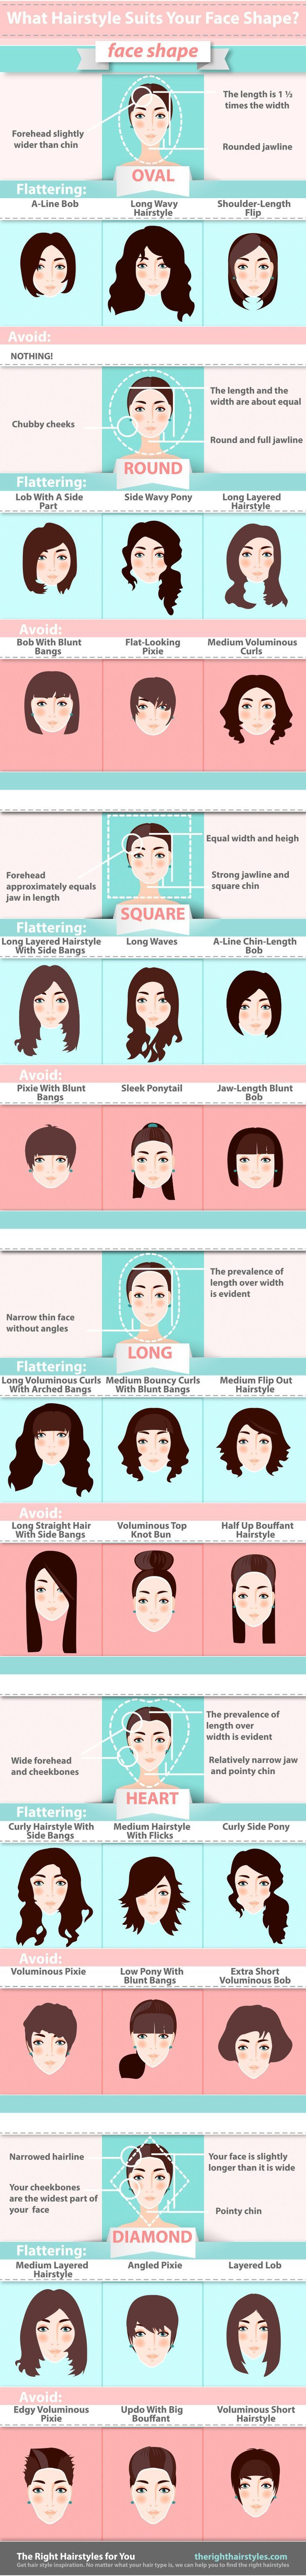 How To Choose A Haircut And Hairstyle According To Your Face Shape? - The Right Hairstyles for You Bob Frisuren Bob Frisur